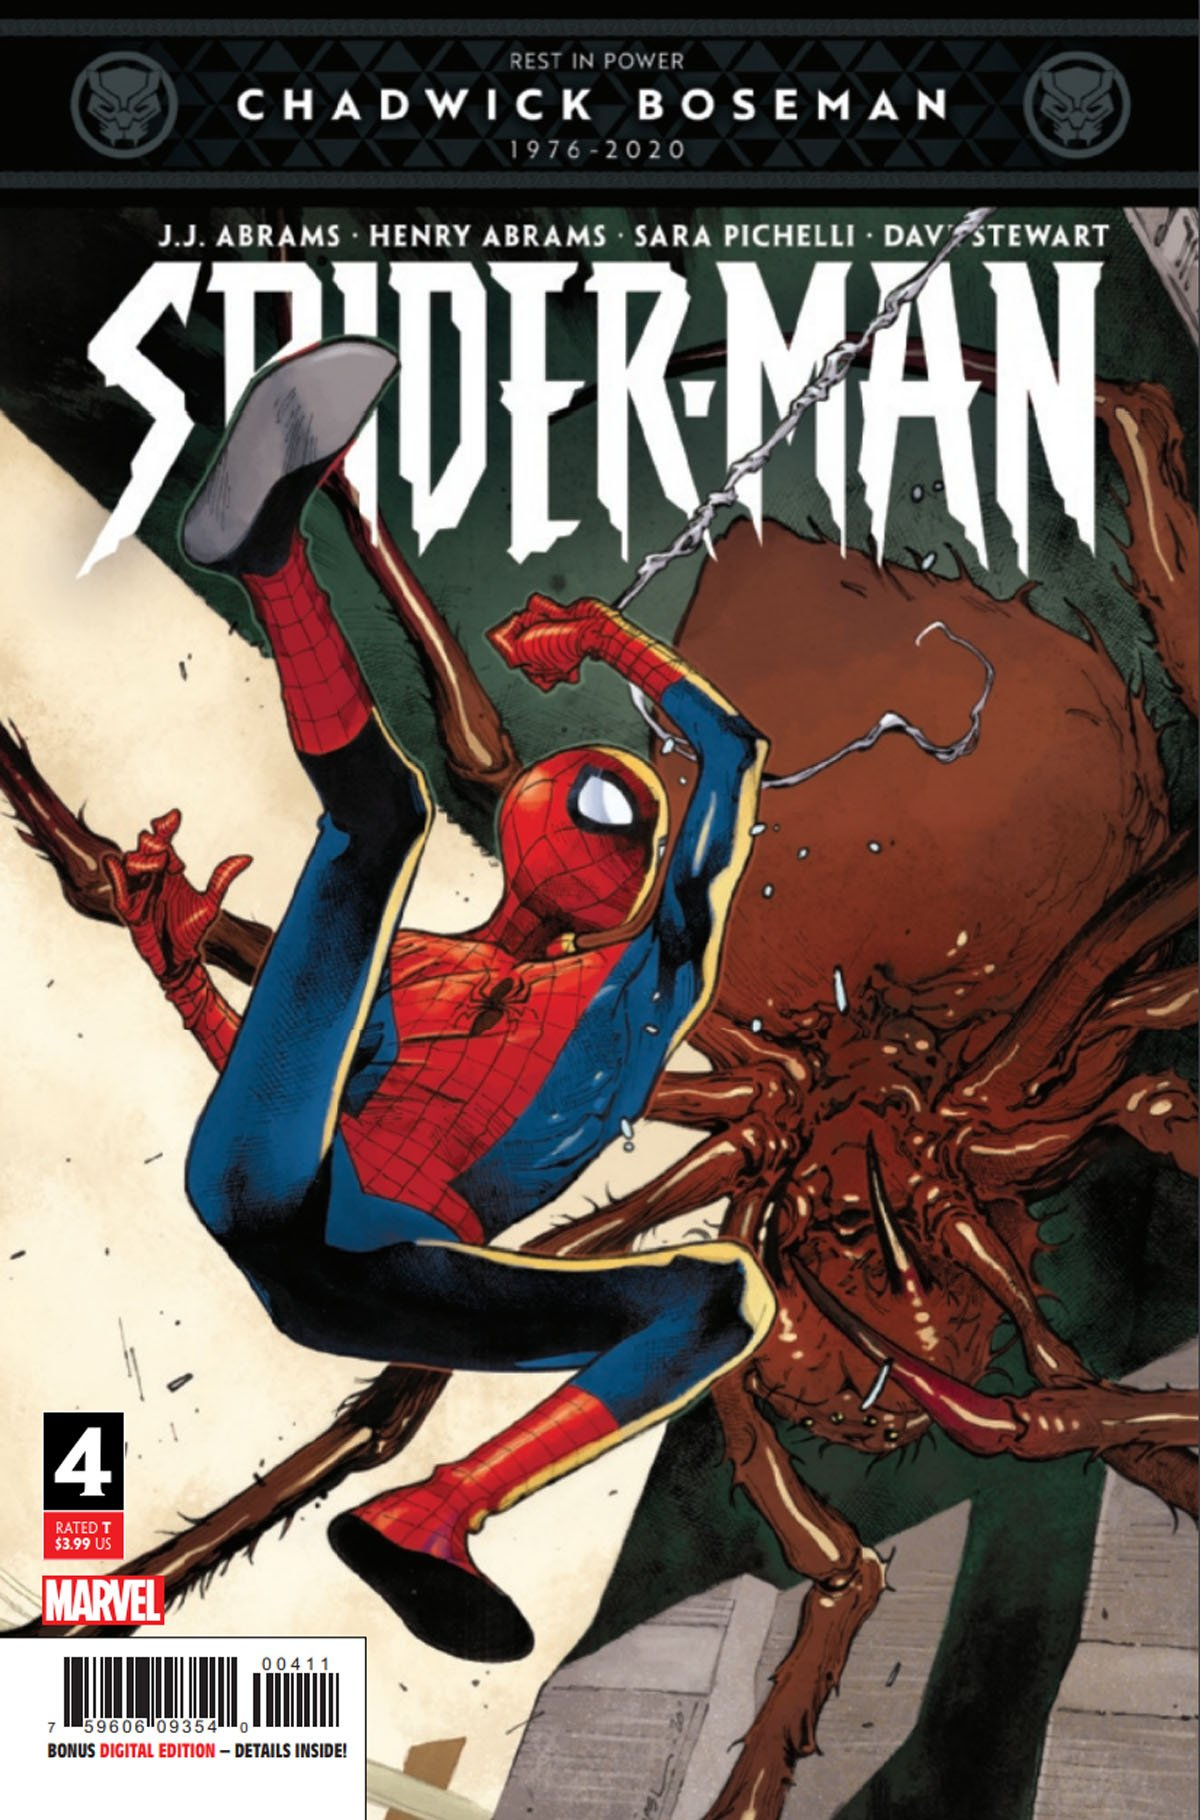 Spider-Man #4 cover